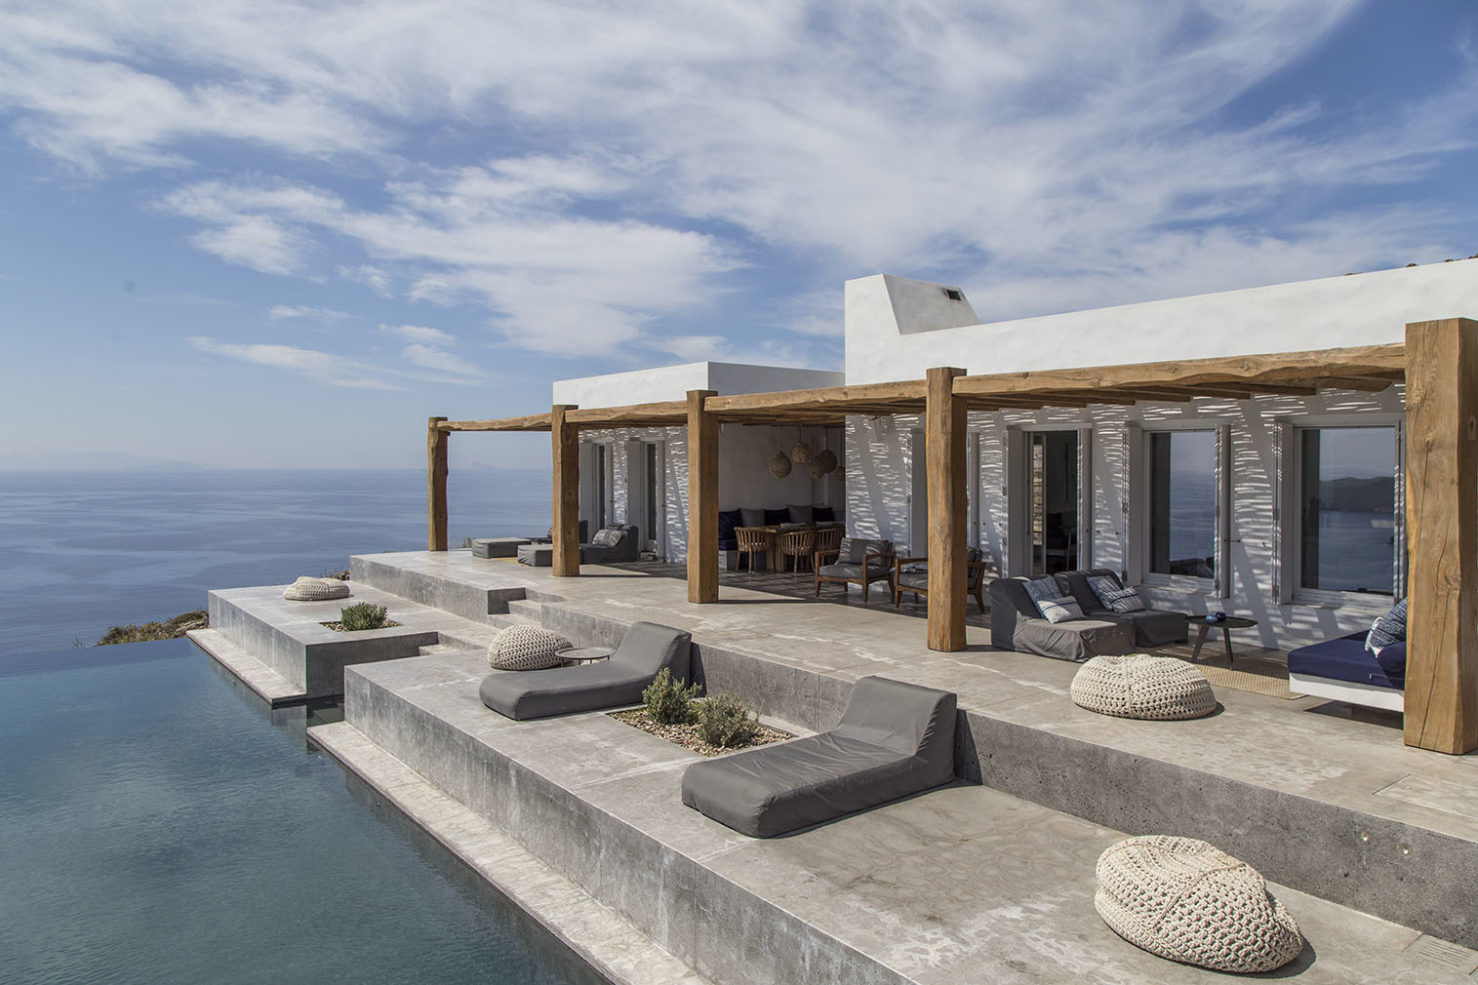 The Greek holiday home is available to rent exclusively via Off Grid Hideaways from €8,650 per week